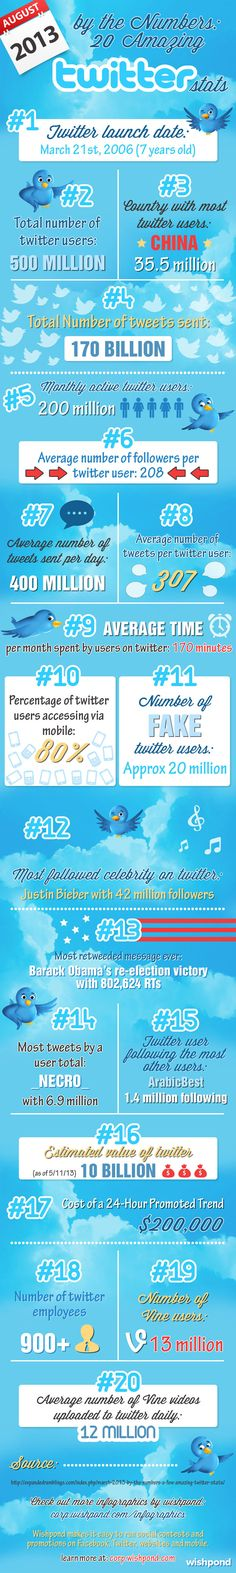 20 Amazing Twitter Stats! [INFOGRAPHIC]